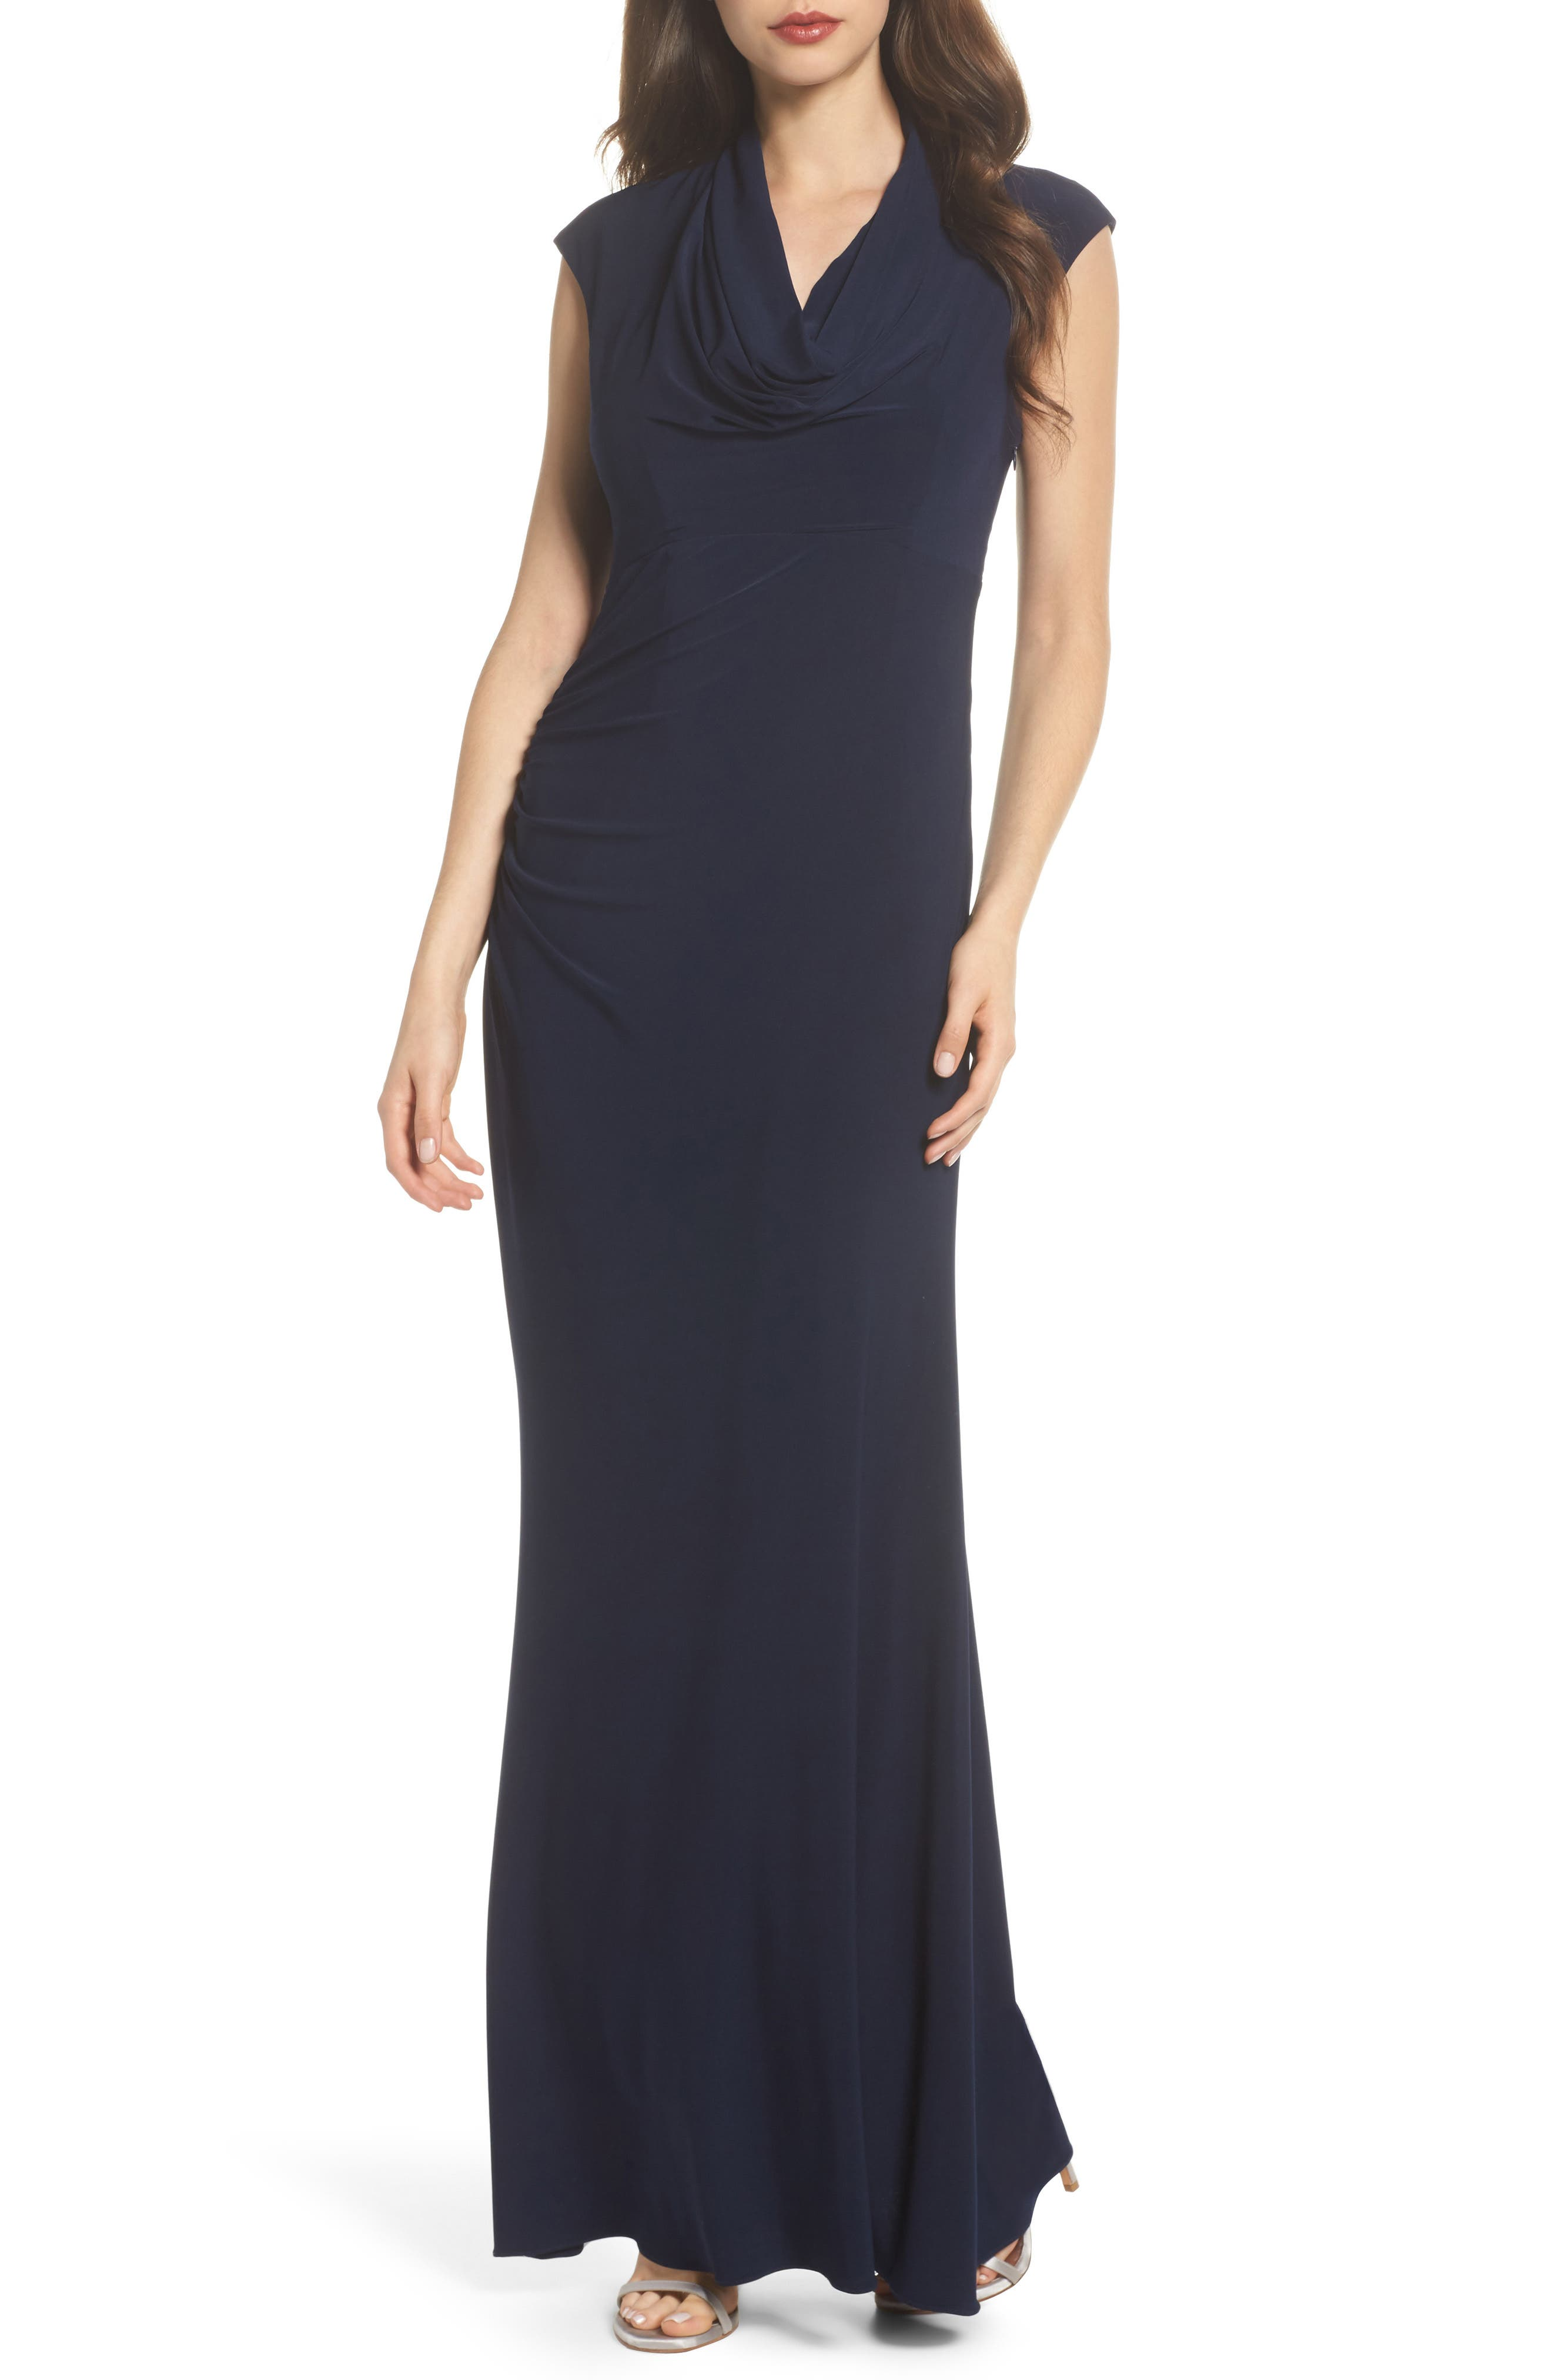 Adrianna Papell Draped Jersey Maxi Dress